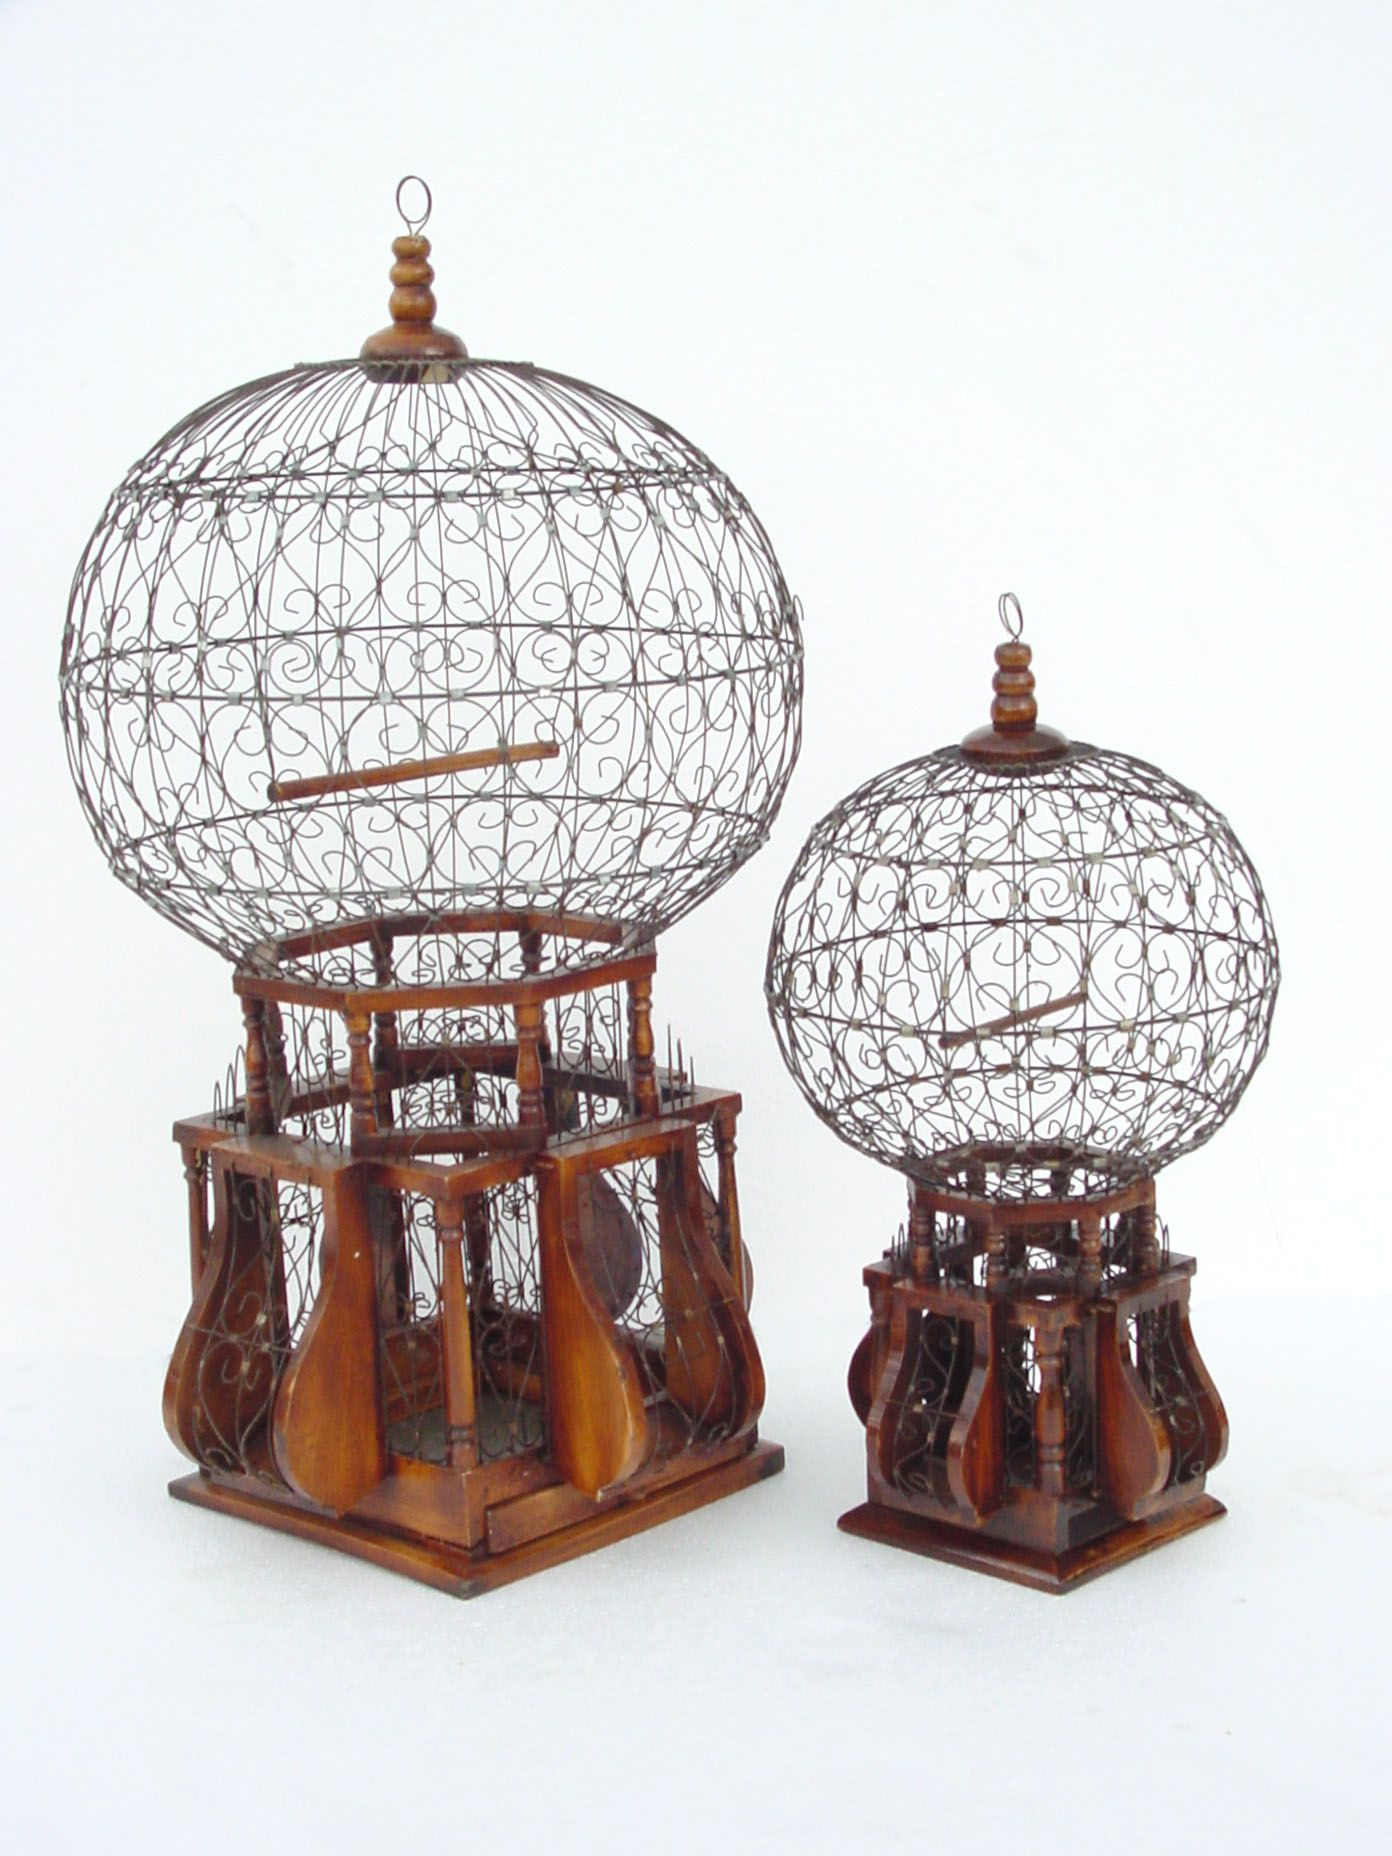 Victorian Birdcages Bird Cage Antique Bird Cages Vintage Bird Cage